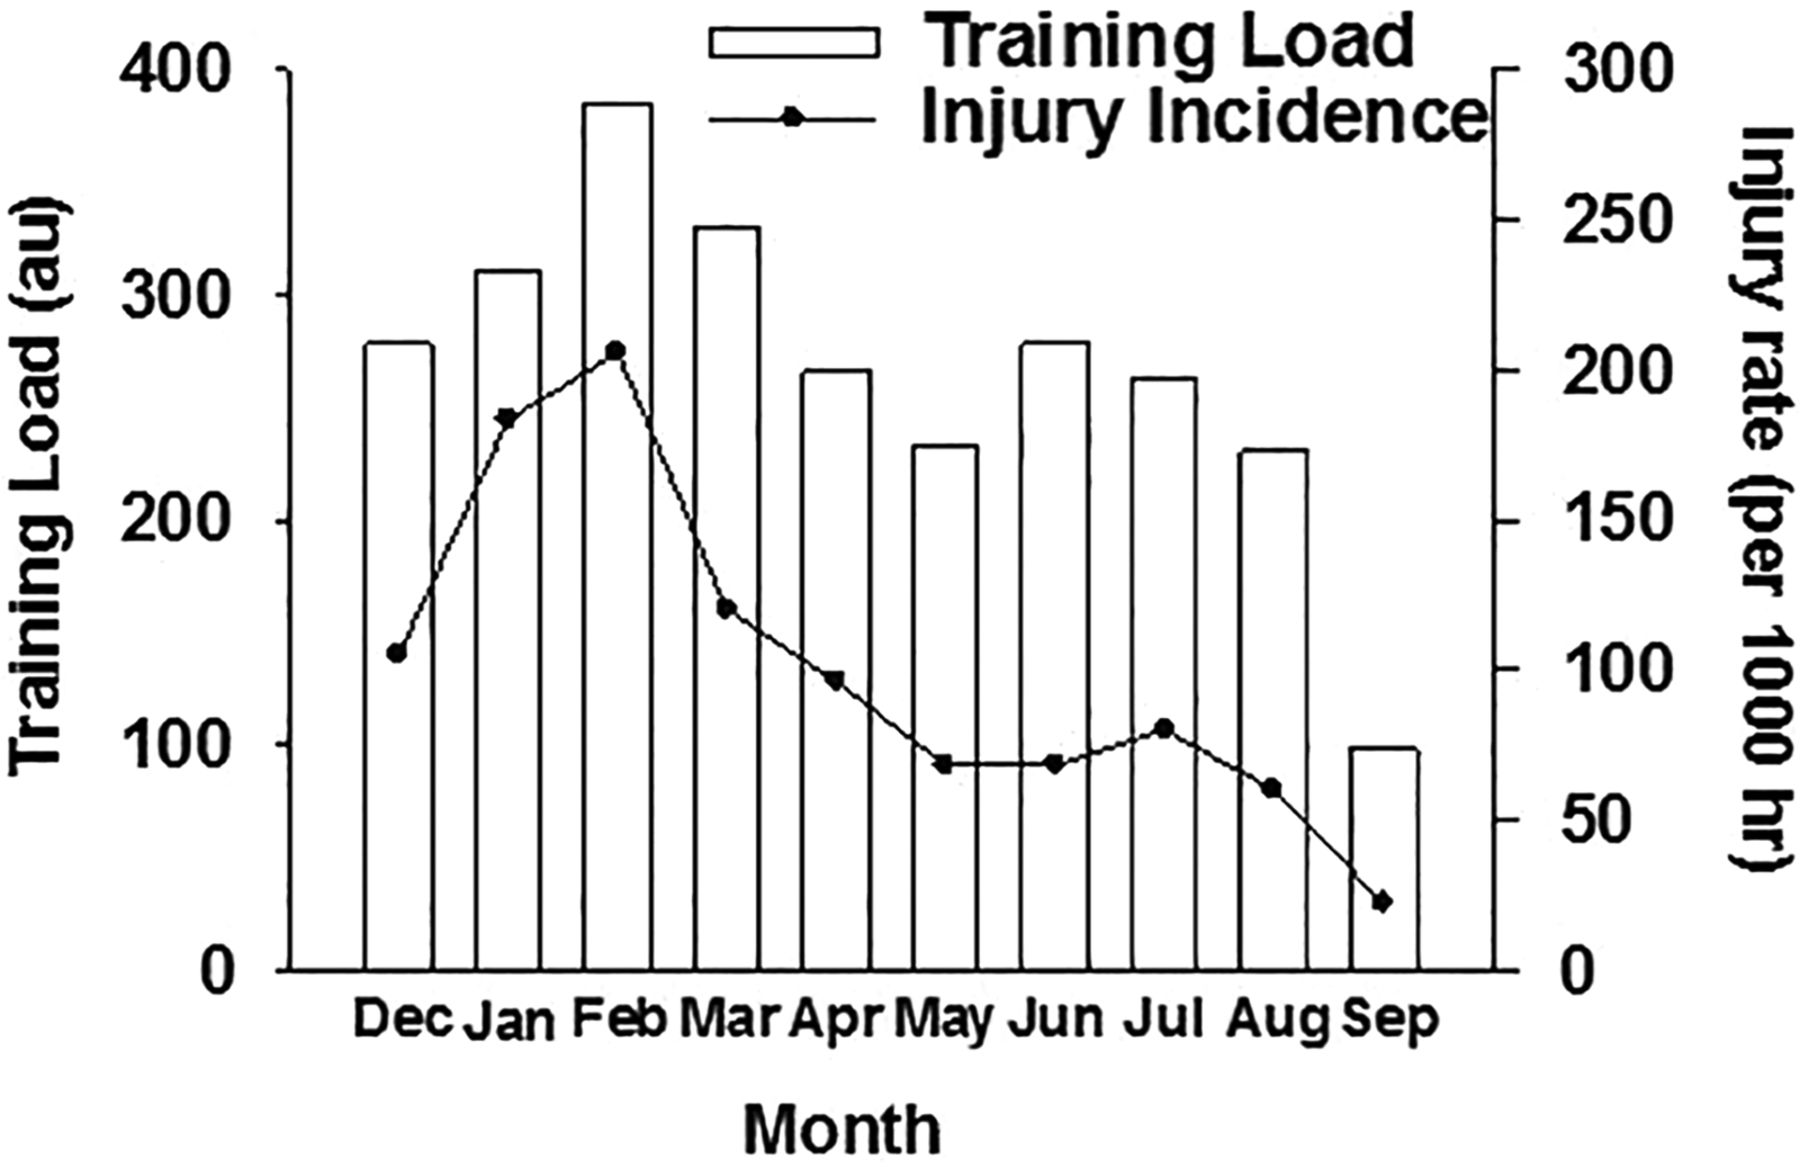 The training—injury prevention paradox: should athletes be training